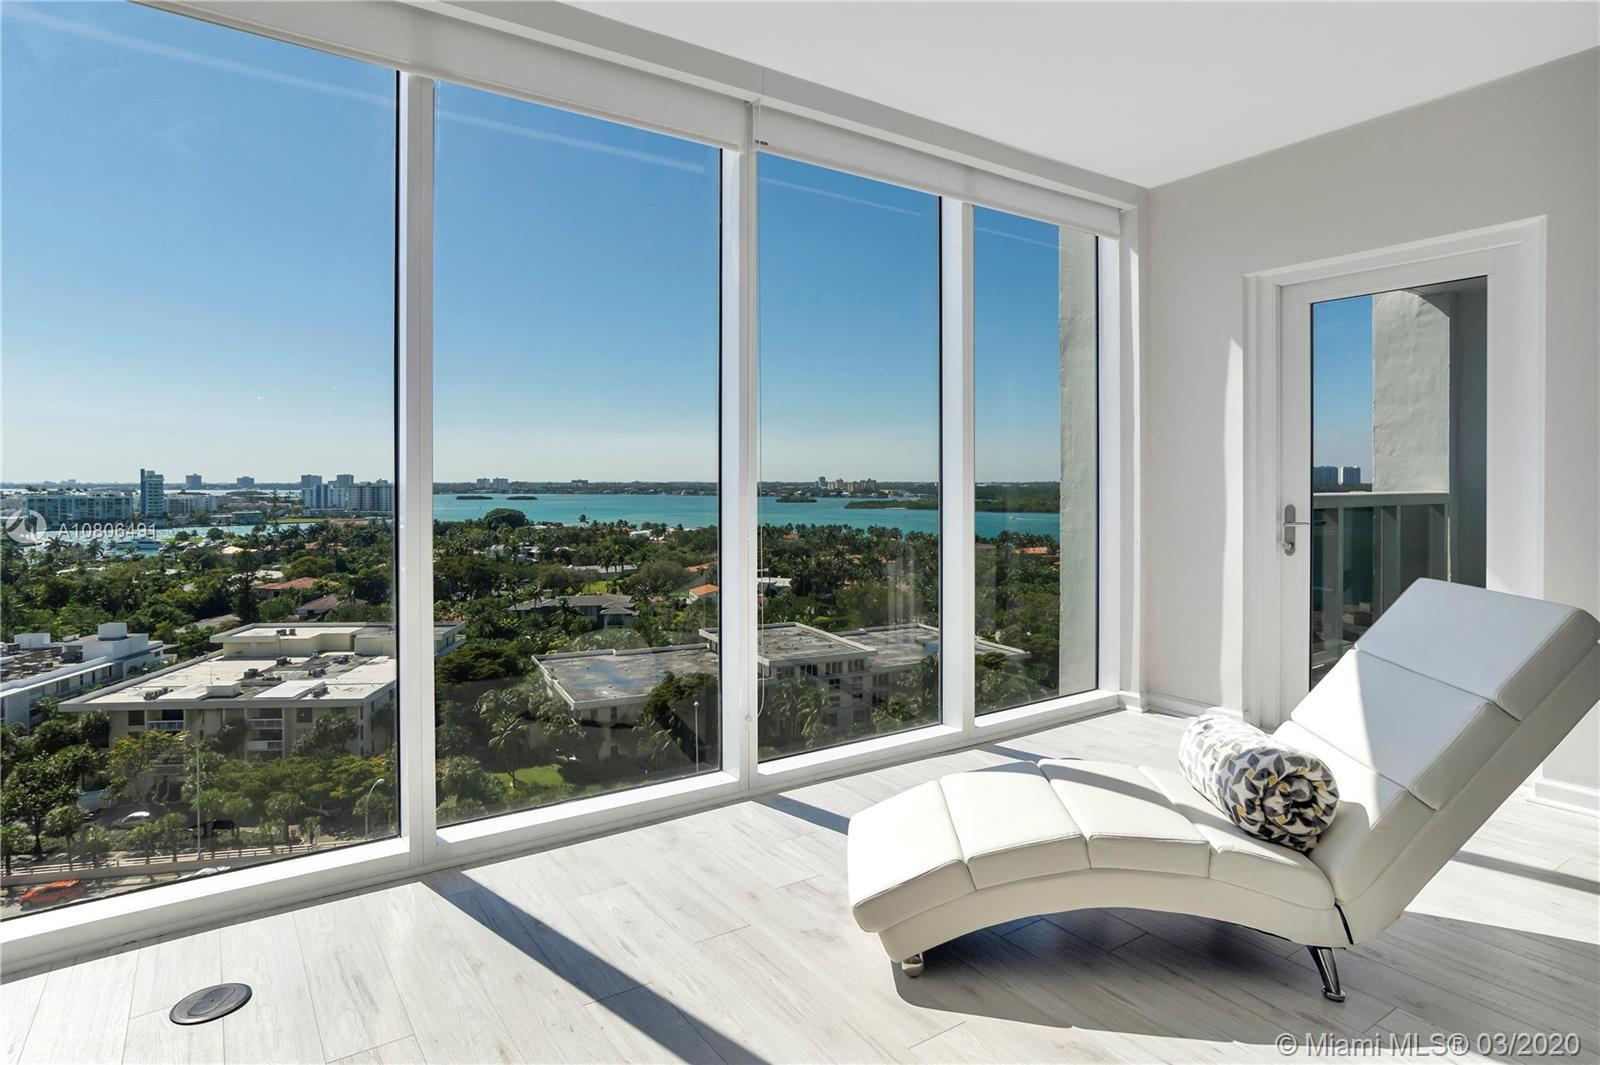 Its Breathtaking Intracoastal views and location best fit this property!, Bay and City Views Residen